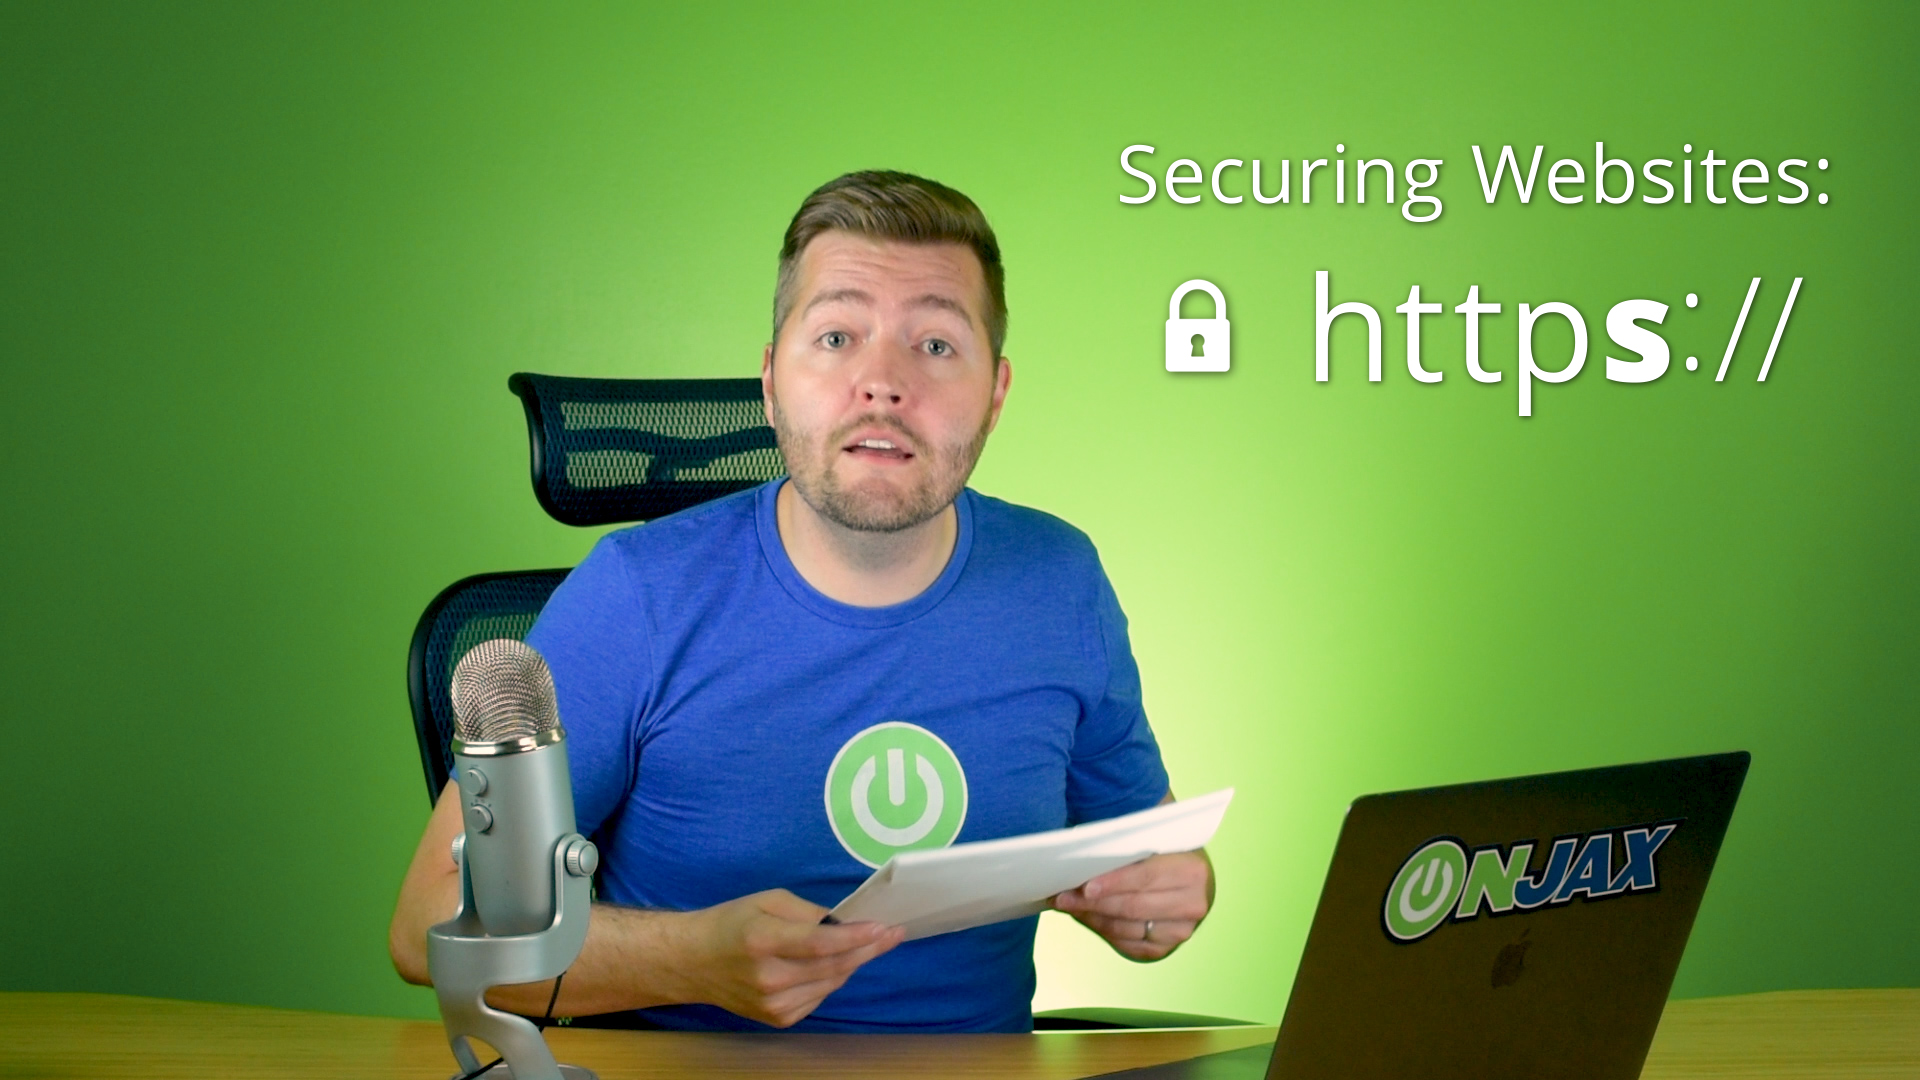 How To Video - HTTPS: Building Trust with Site Security